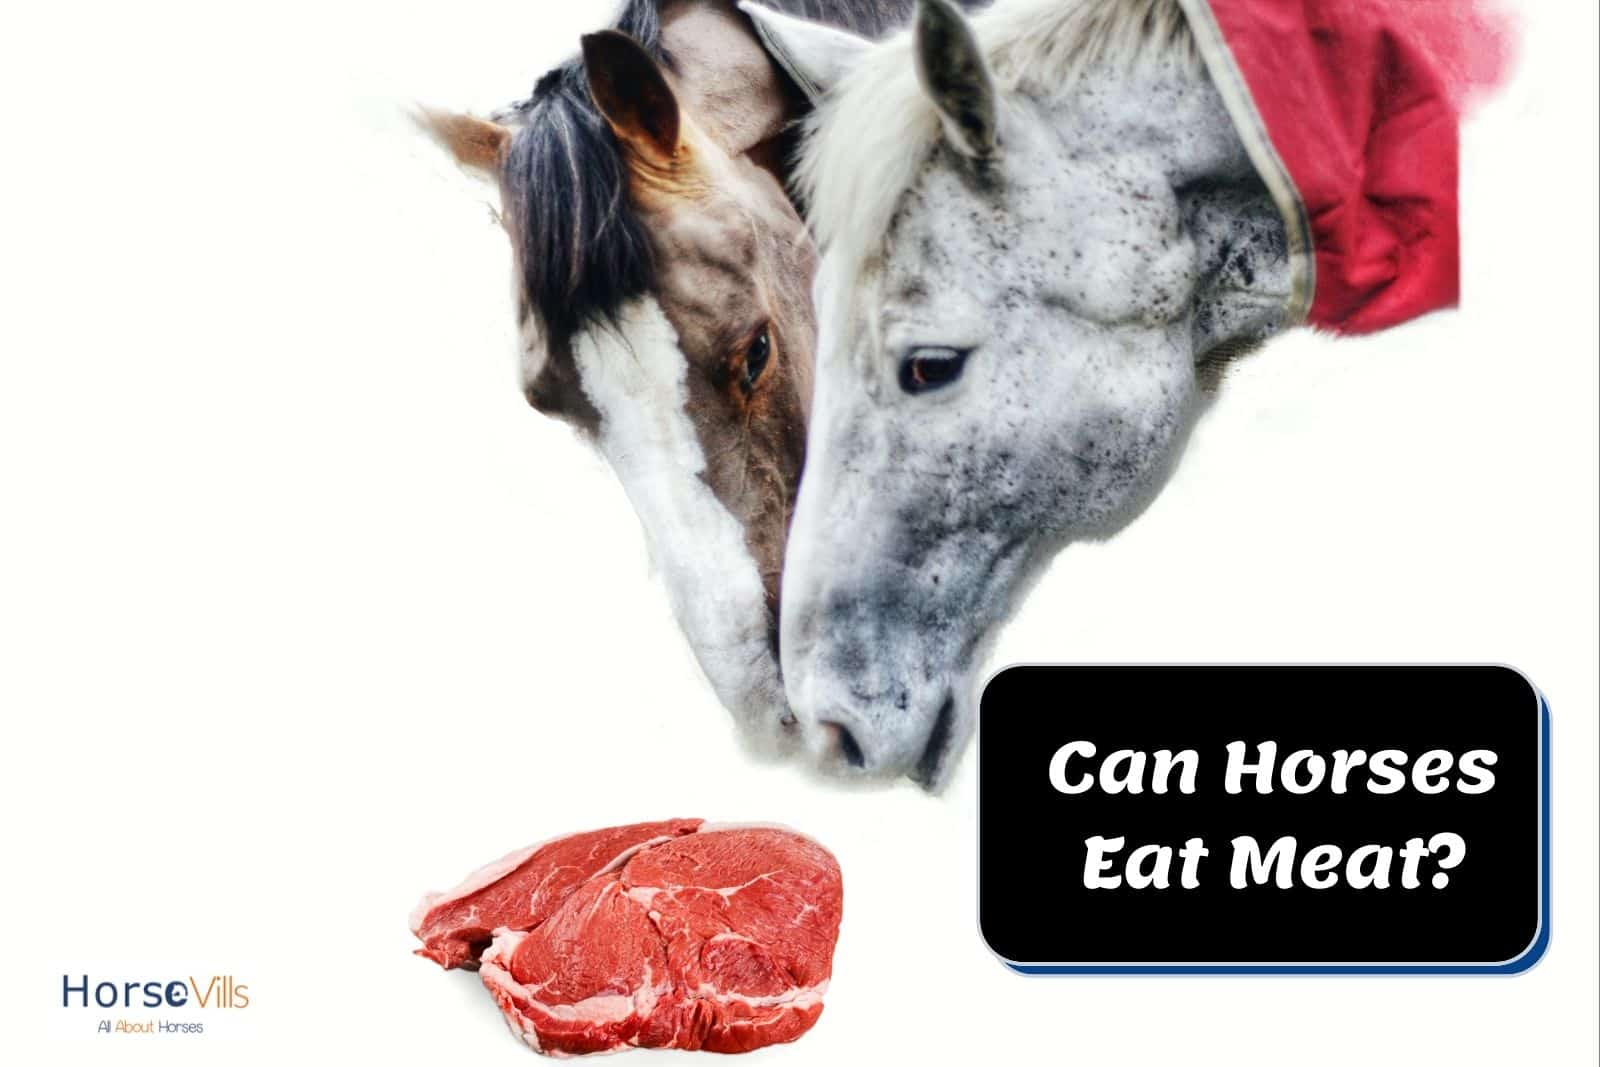 two horses are going to eat the pieces of pork but can horses eat meat?